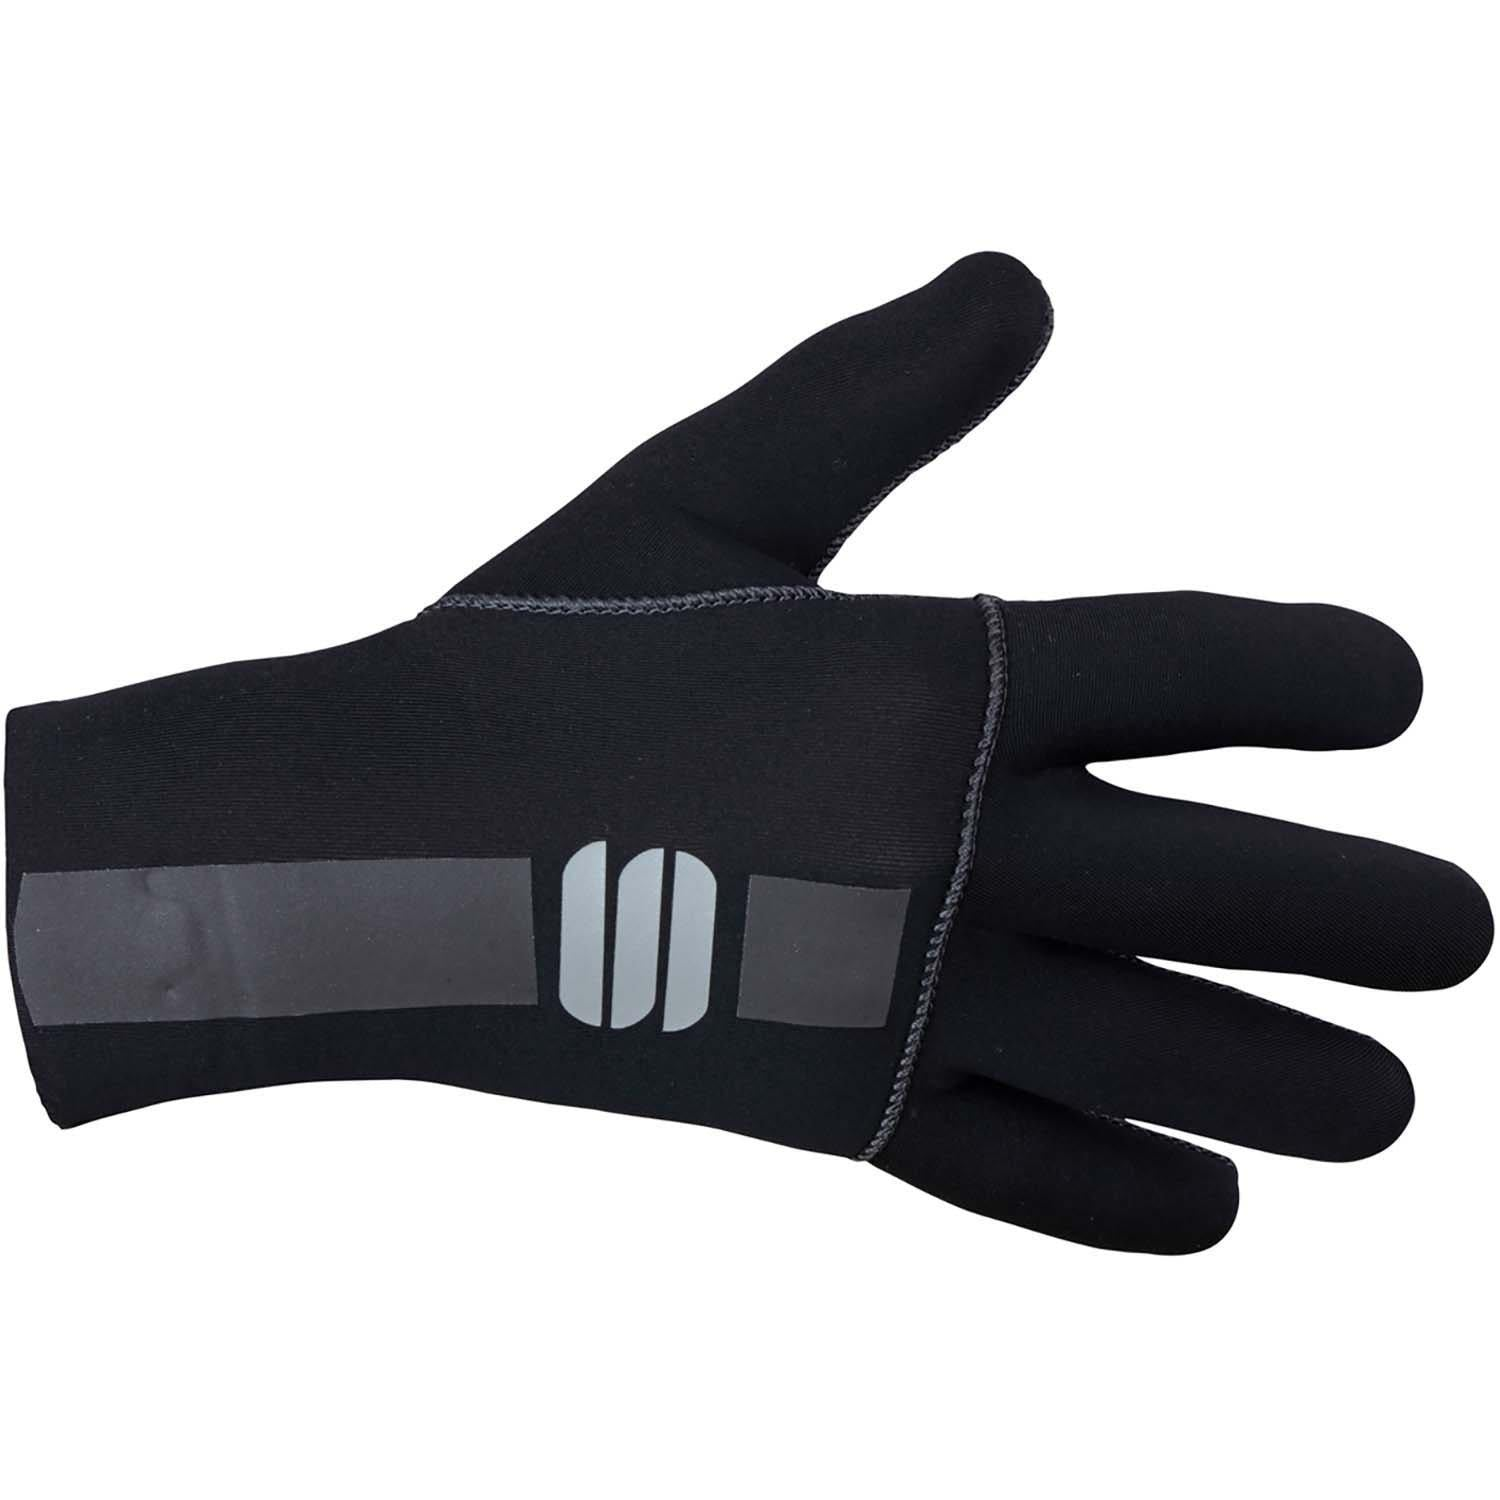 Sportful-Sportful Neoprene Gloves-Black-S/M-SF0196900209-saddleback-elite-performance-cycling